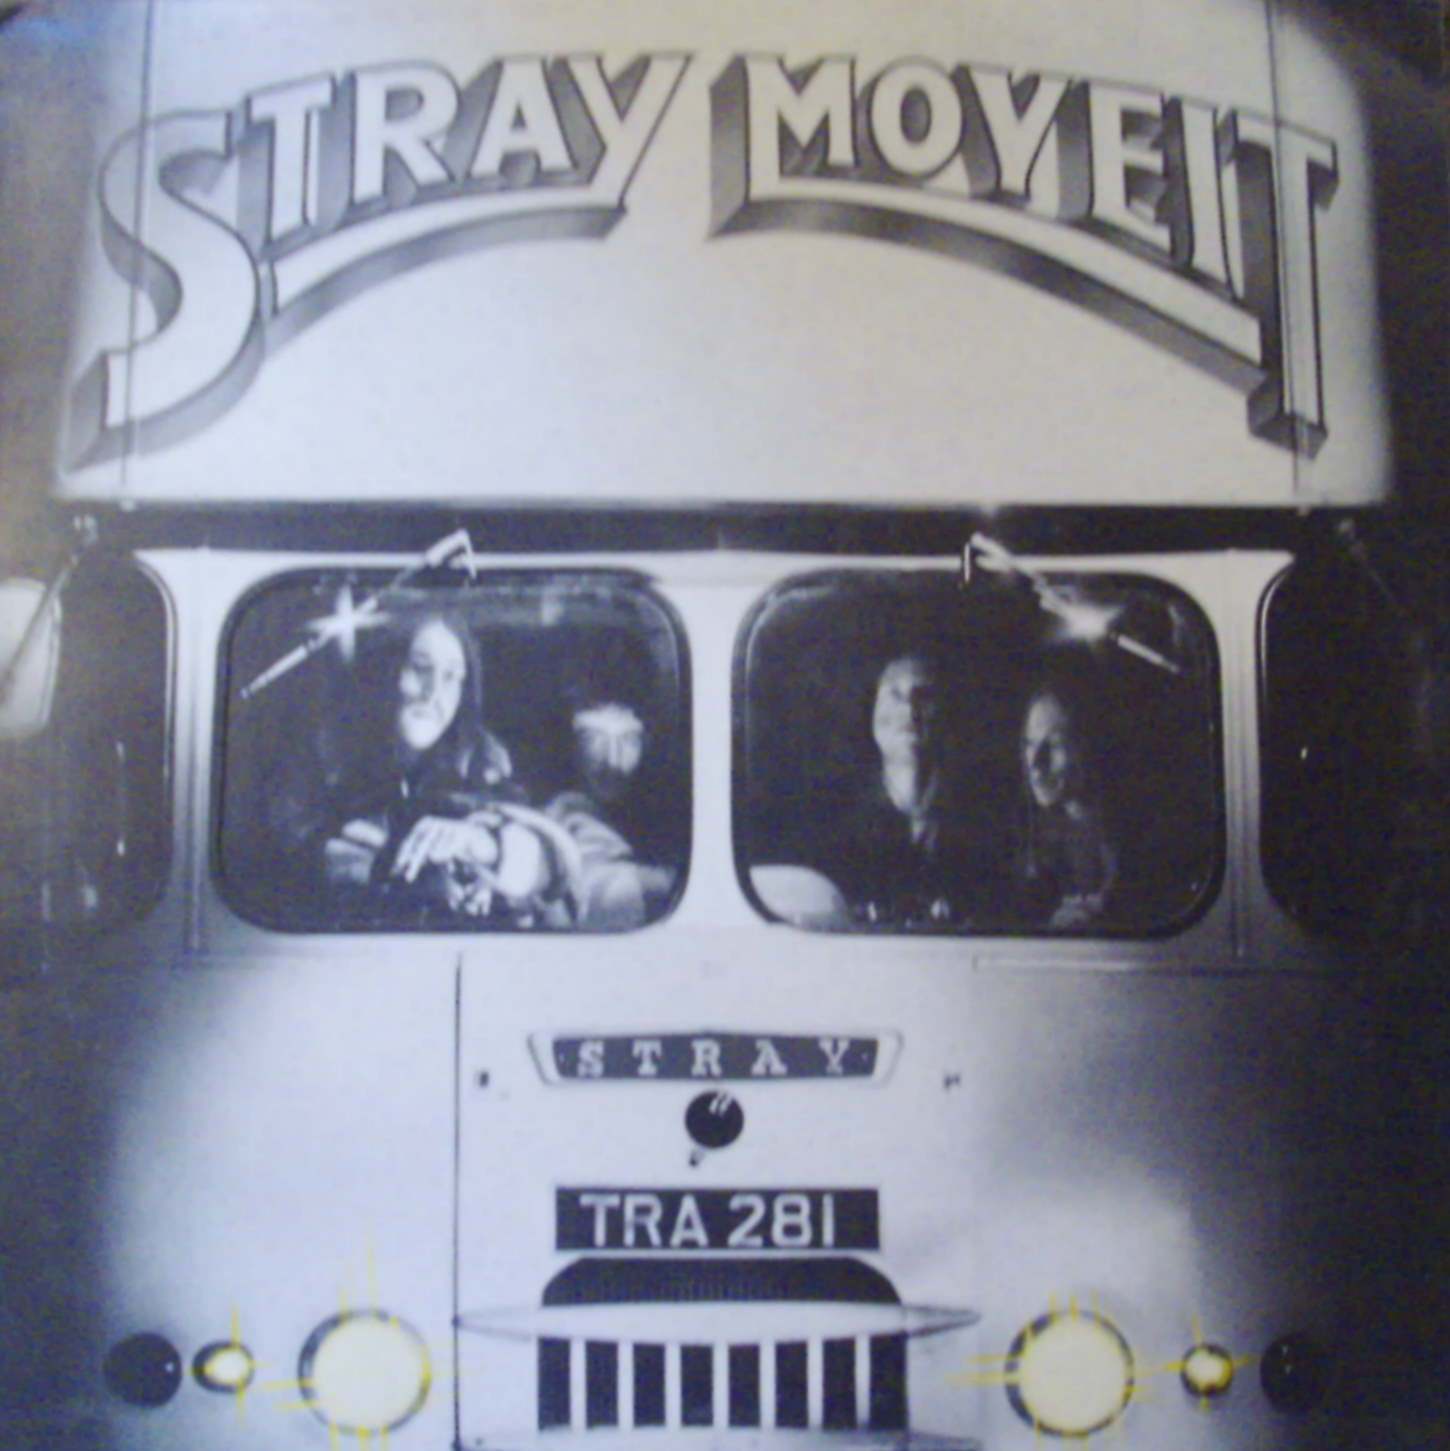 Stray - Move It